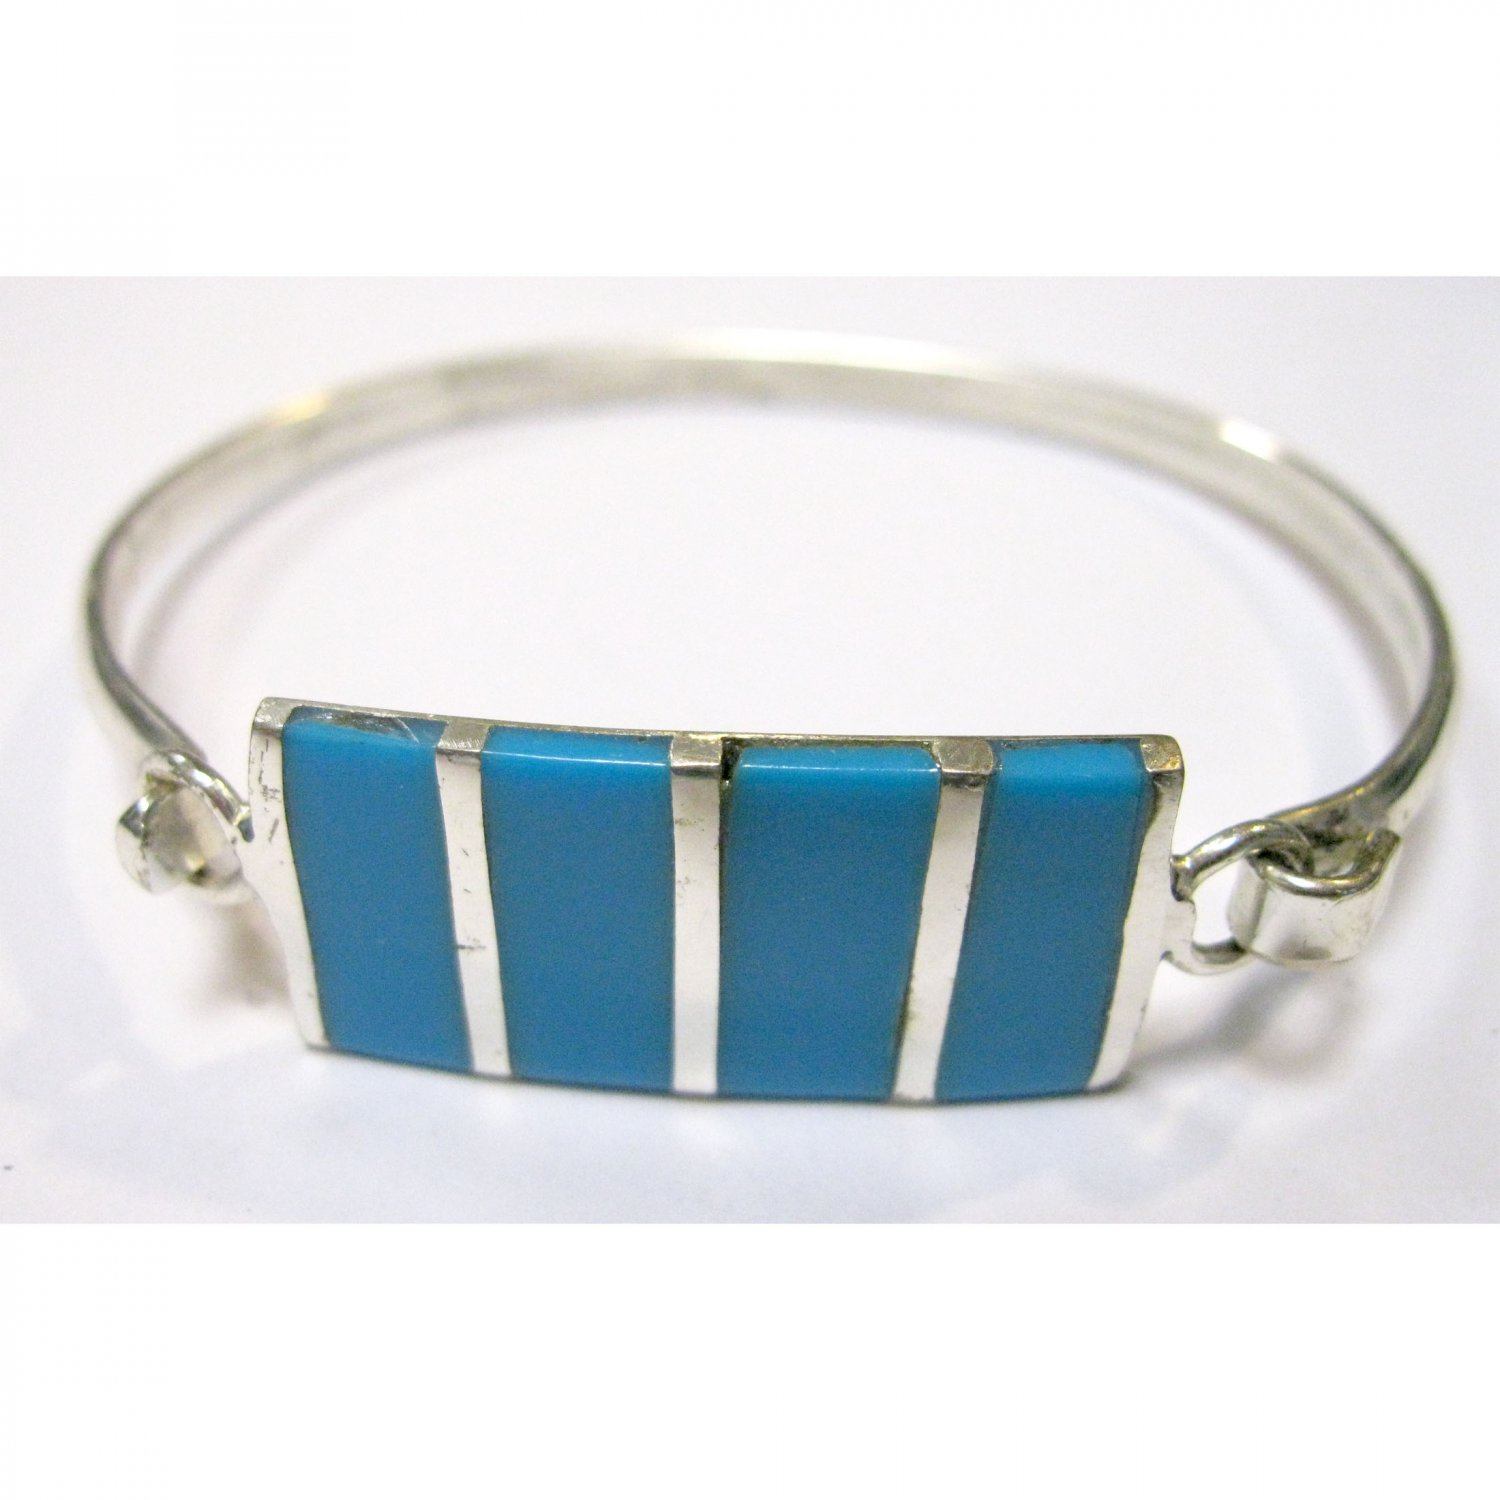 Turquoise sterling silver bangle bracelet